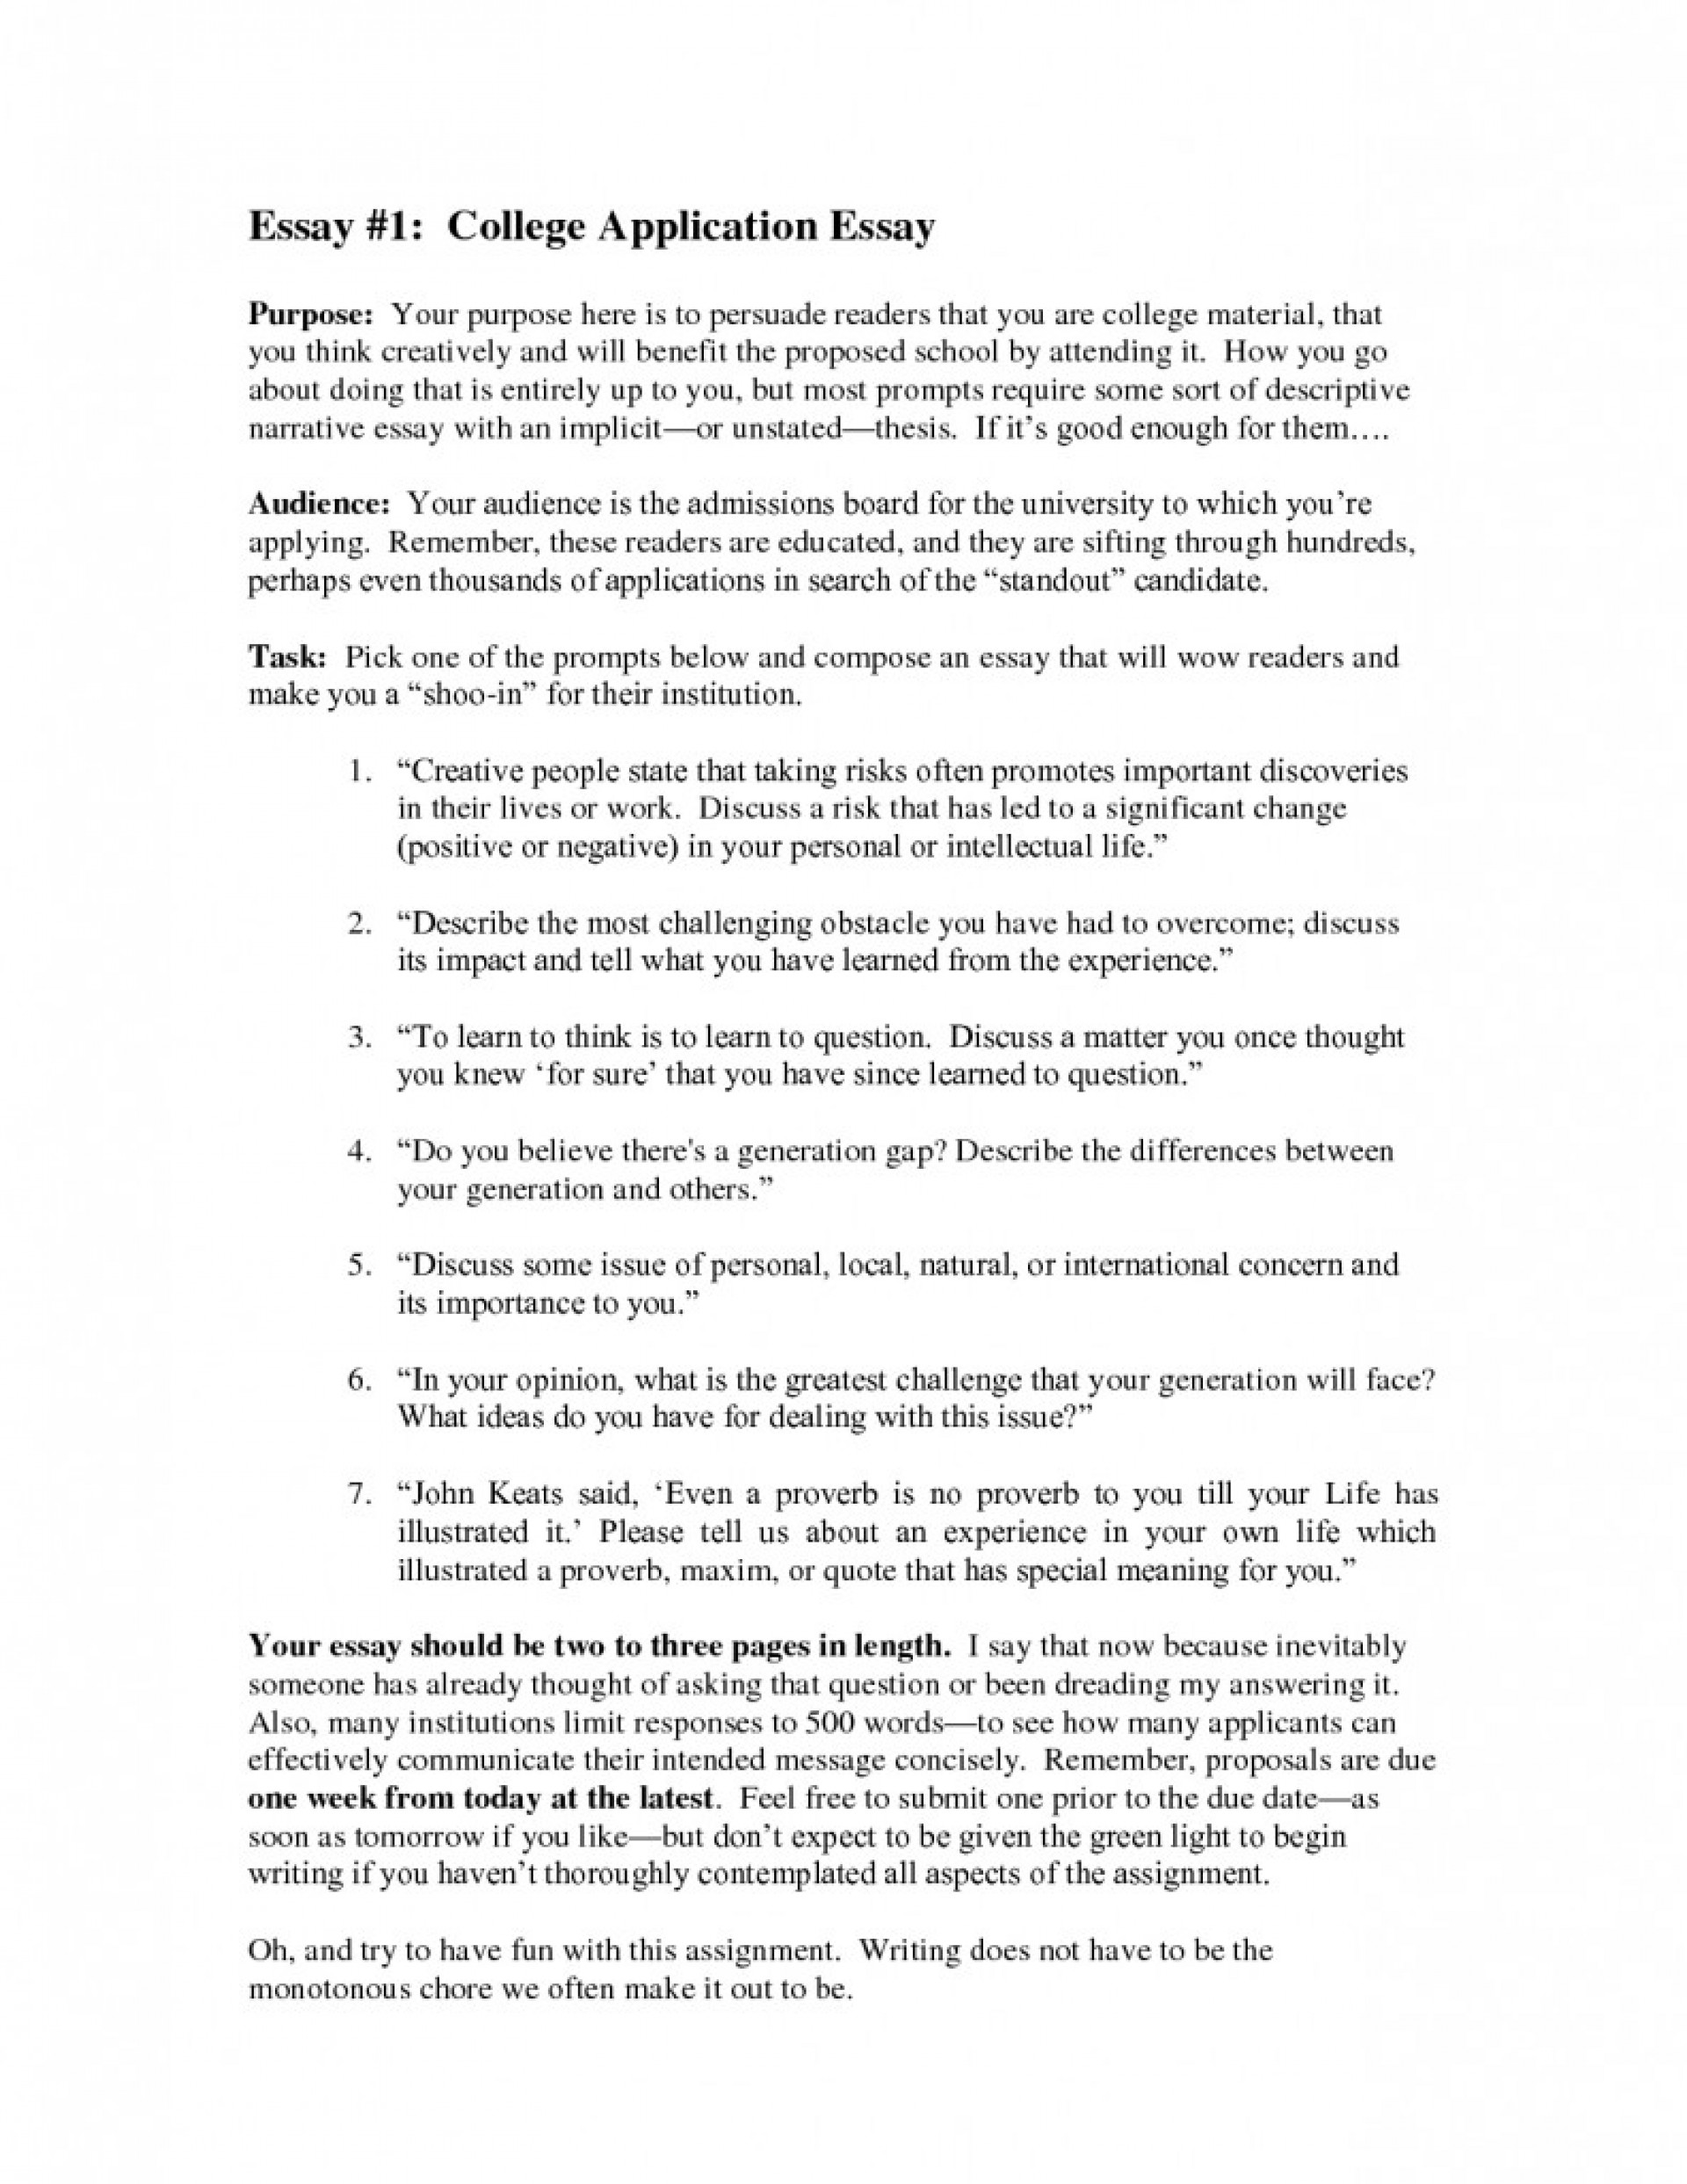 004 College Application Essay 791x1024 Writing Imposing Prompts Tips 1920